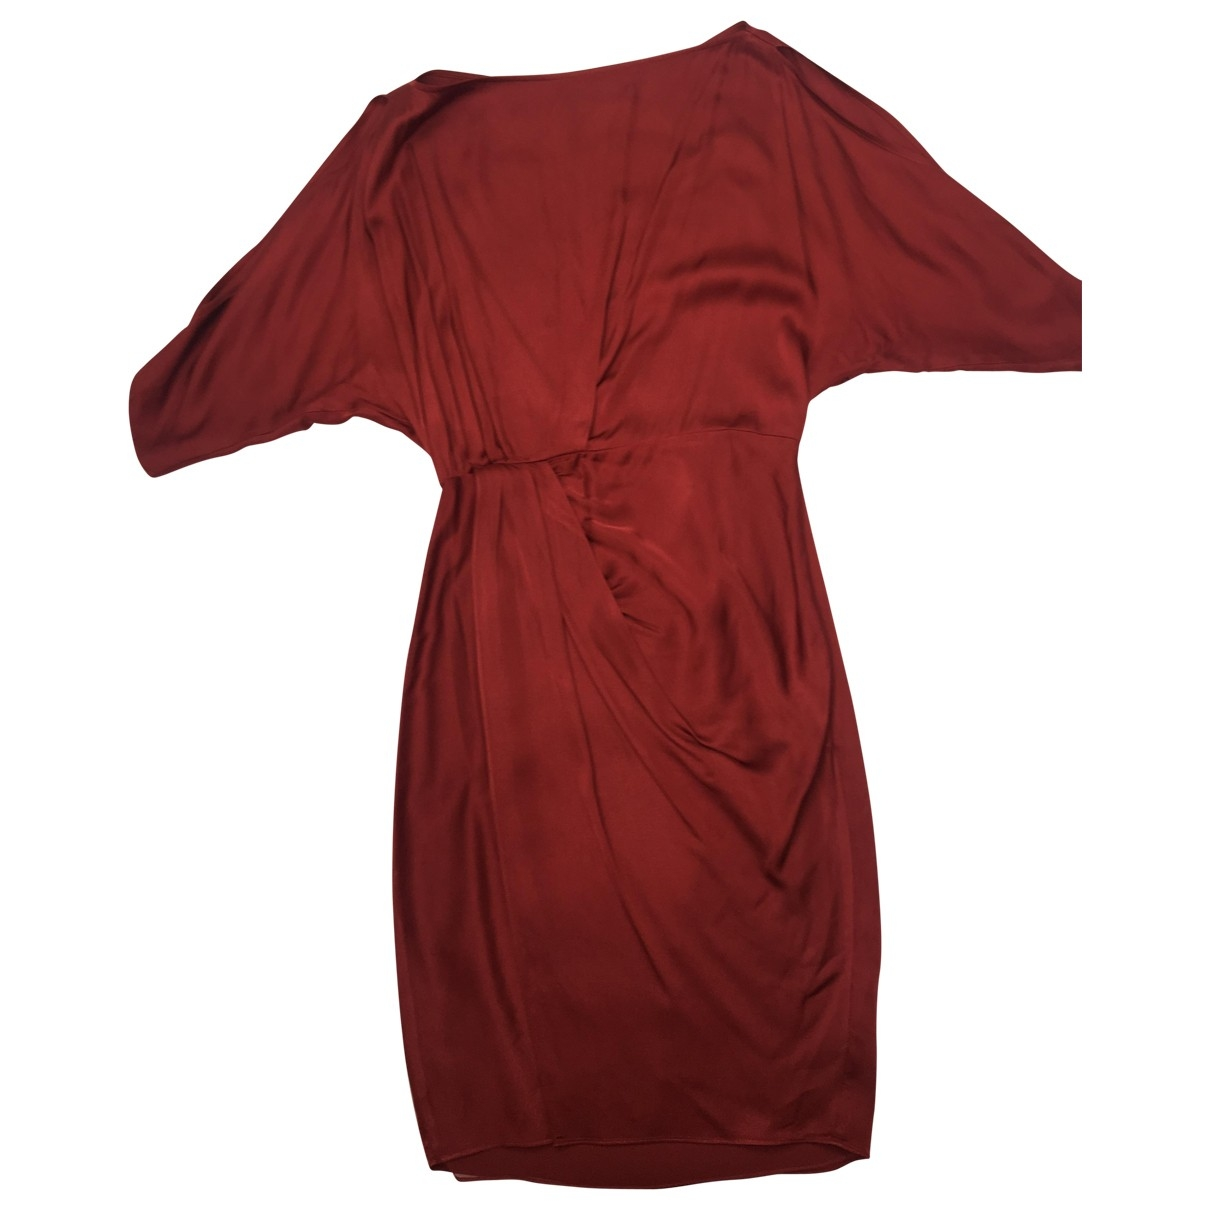 All Saints \N Kleid in  Rot Polyester